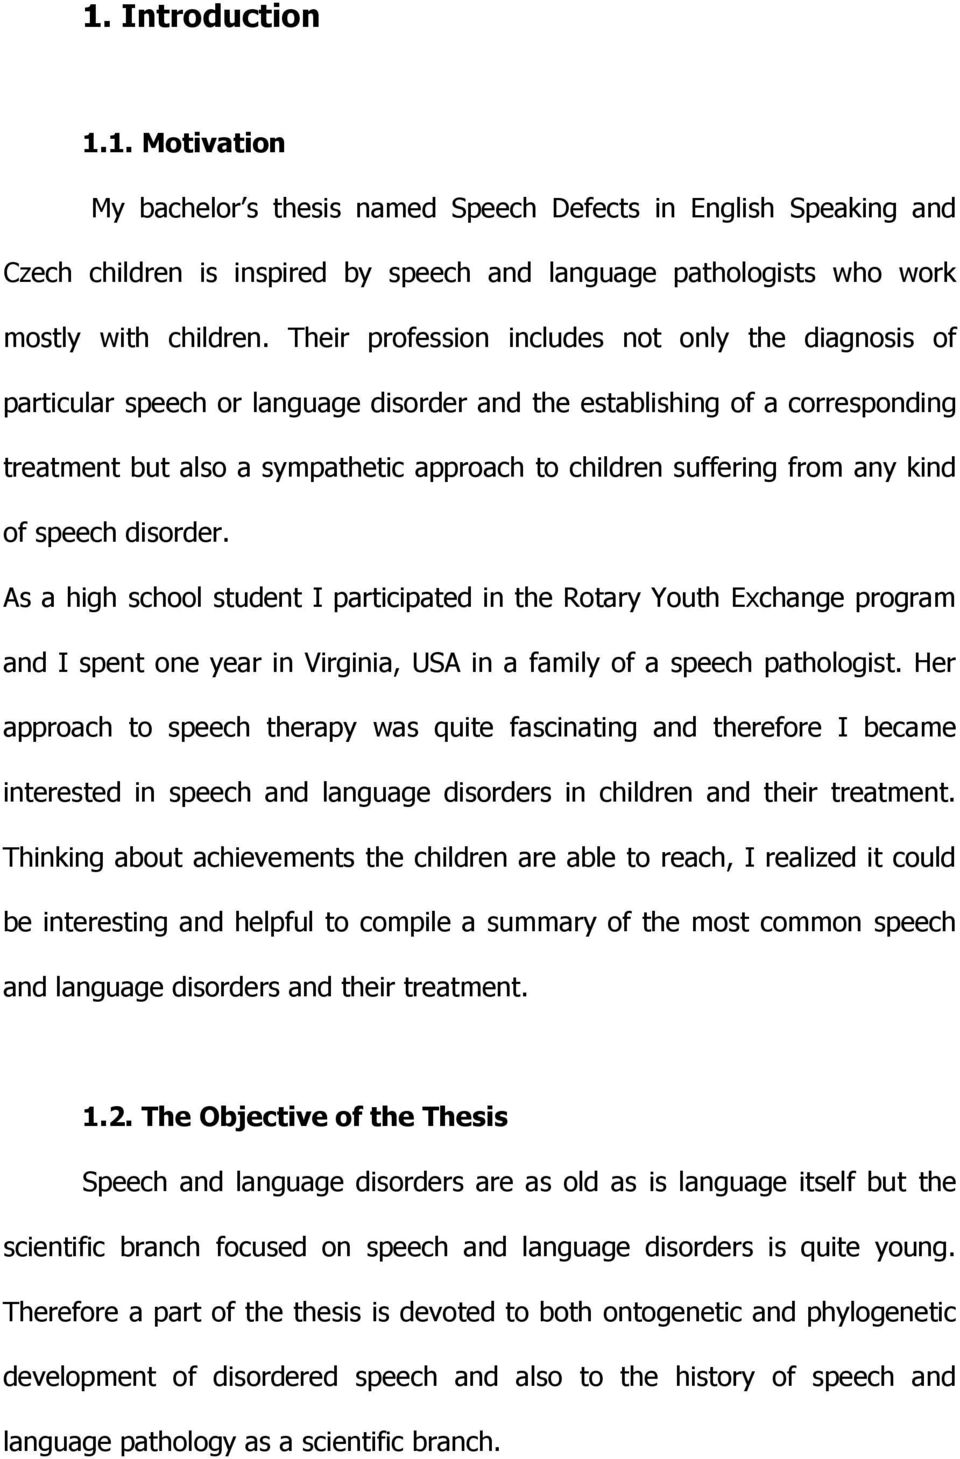 any kind of speech disorder. As a high school student I participated in the Rotary Youth Exchange program and I spent one year in Virginia, USA in a family of a speech pathologist.